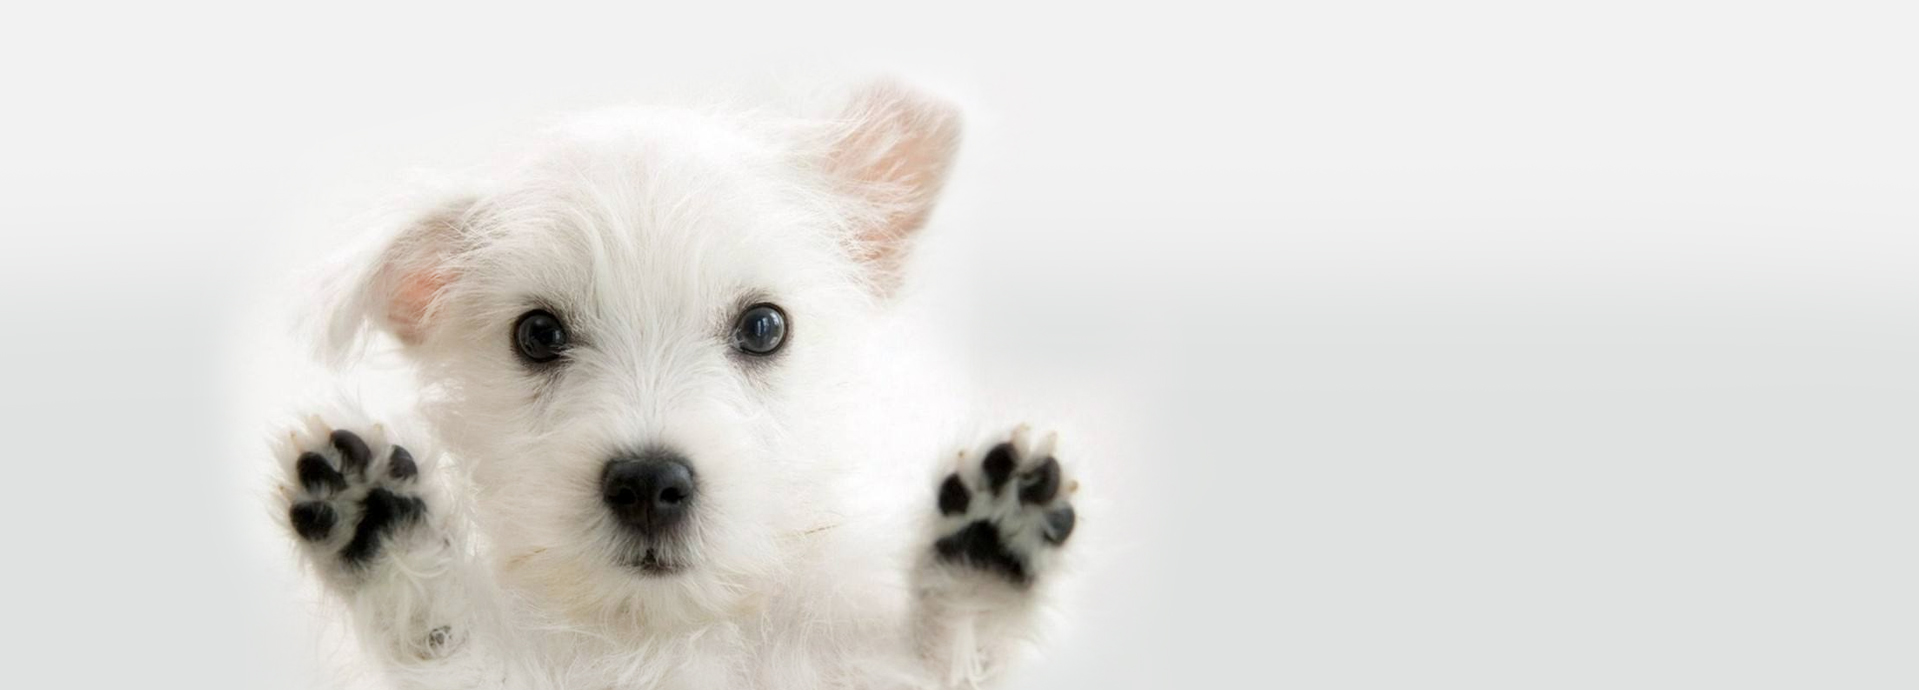 adorable  simple white banner  adorable  pet  dog